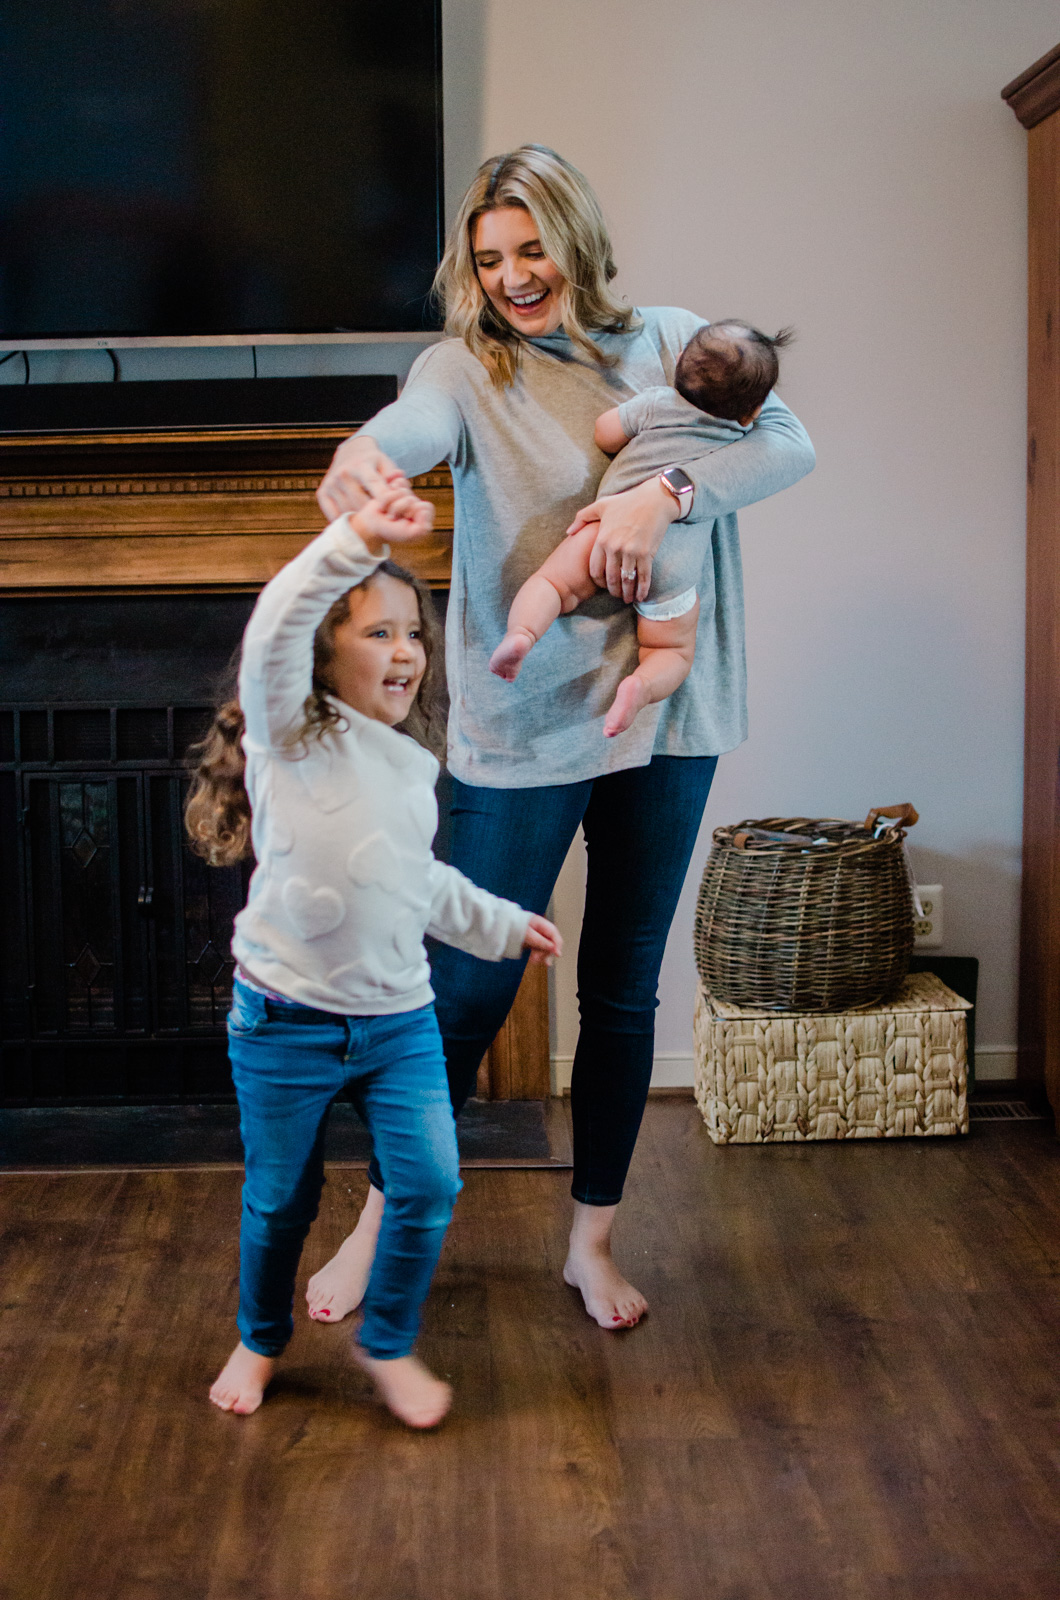 Richmond Virginia mom blogger Lauren Dix shares her top ten tips for staying heathy this winter!